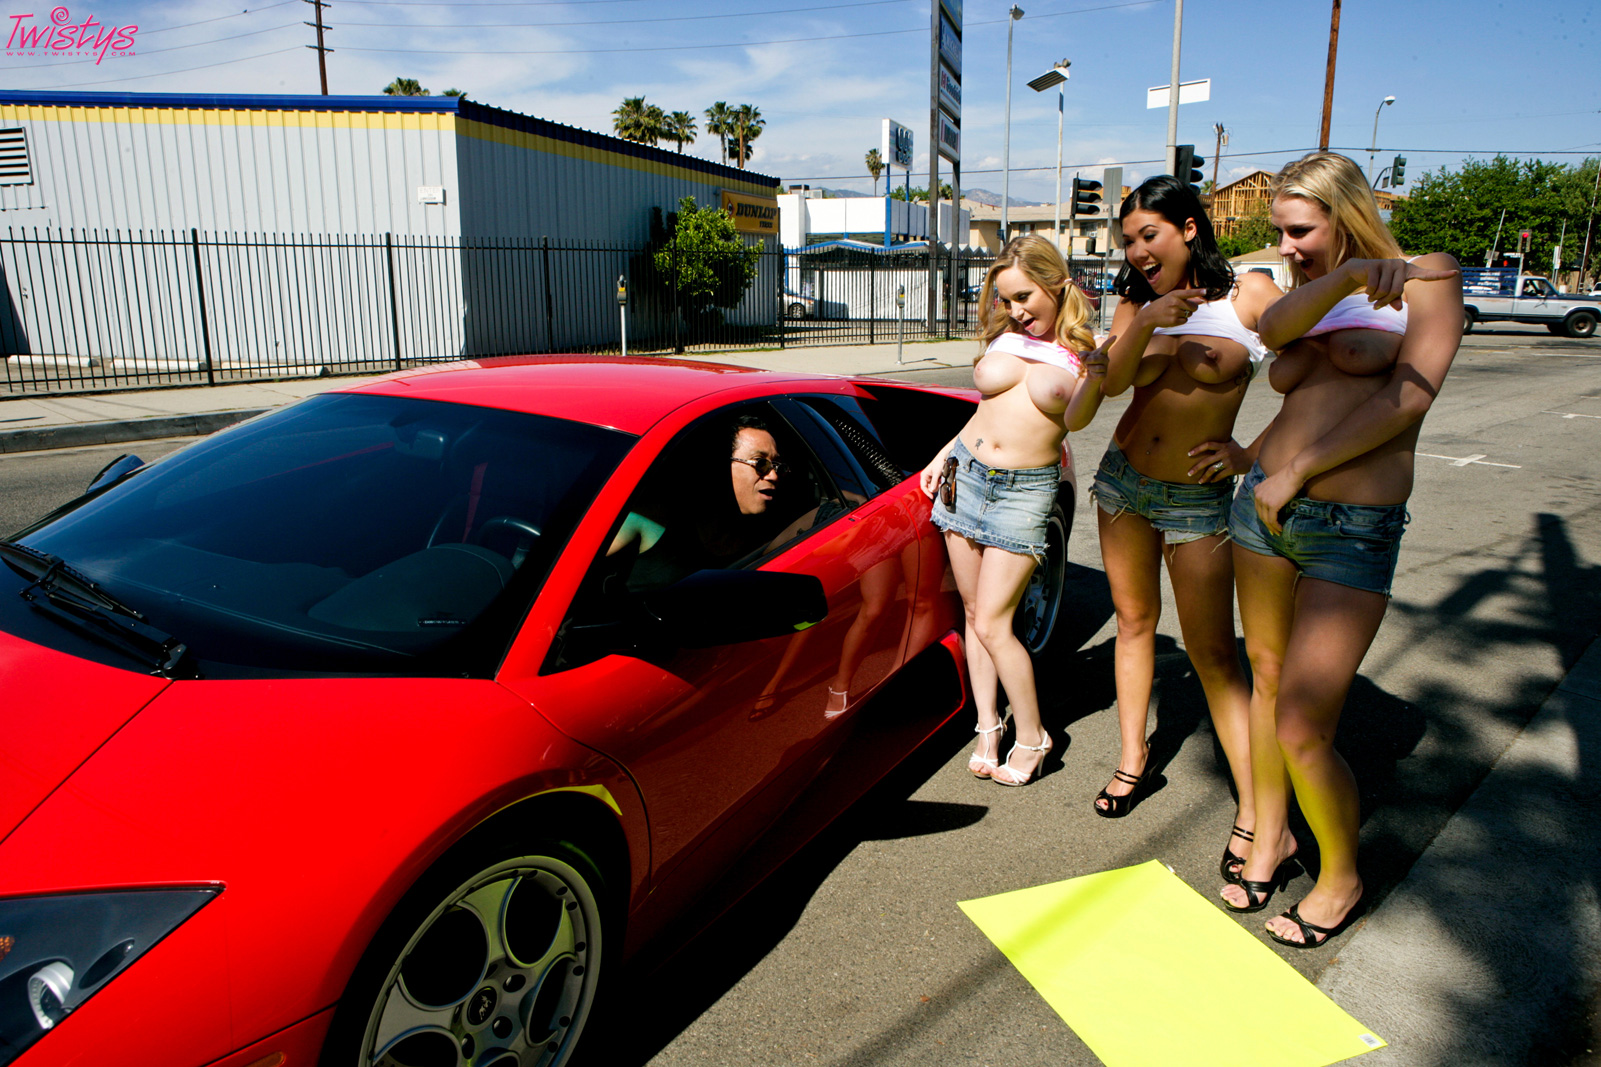 twistys car wash with 3 horny girls. - movie shark